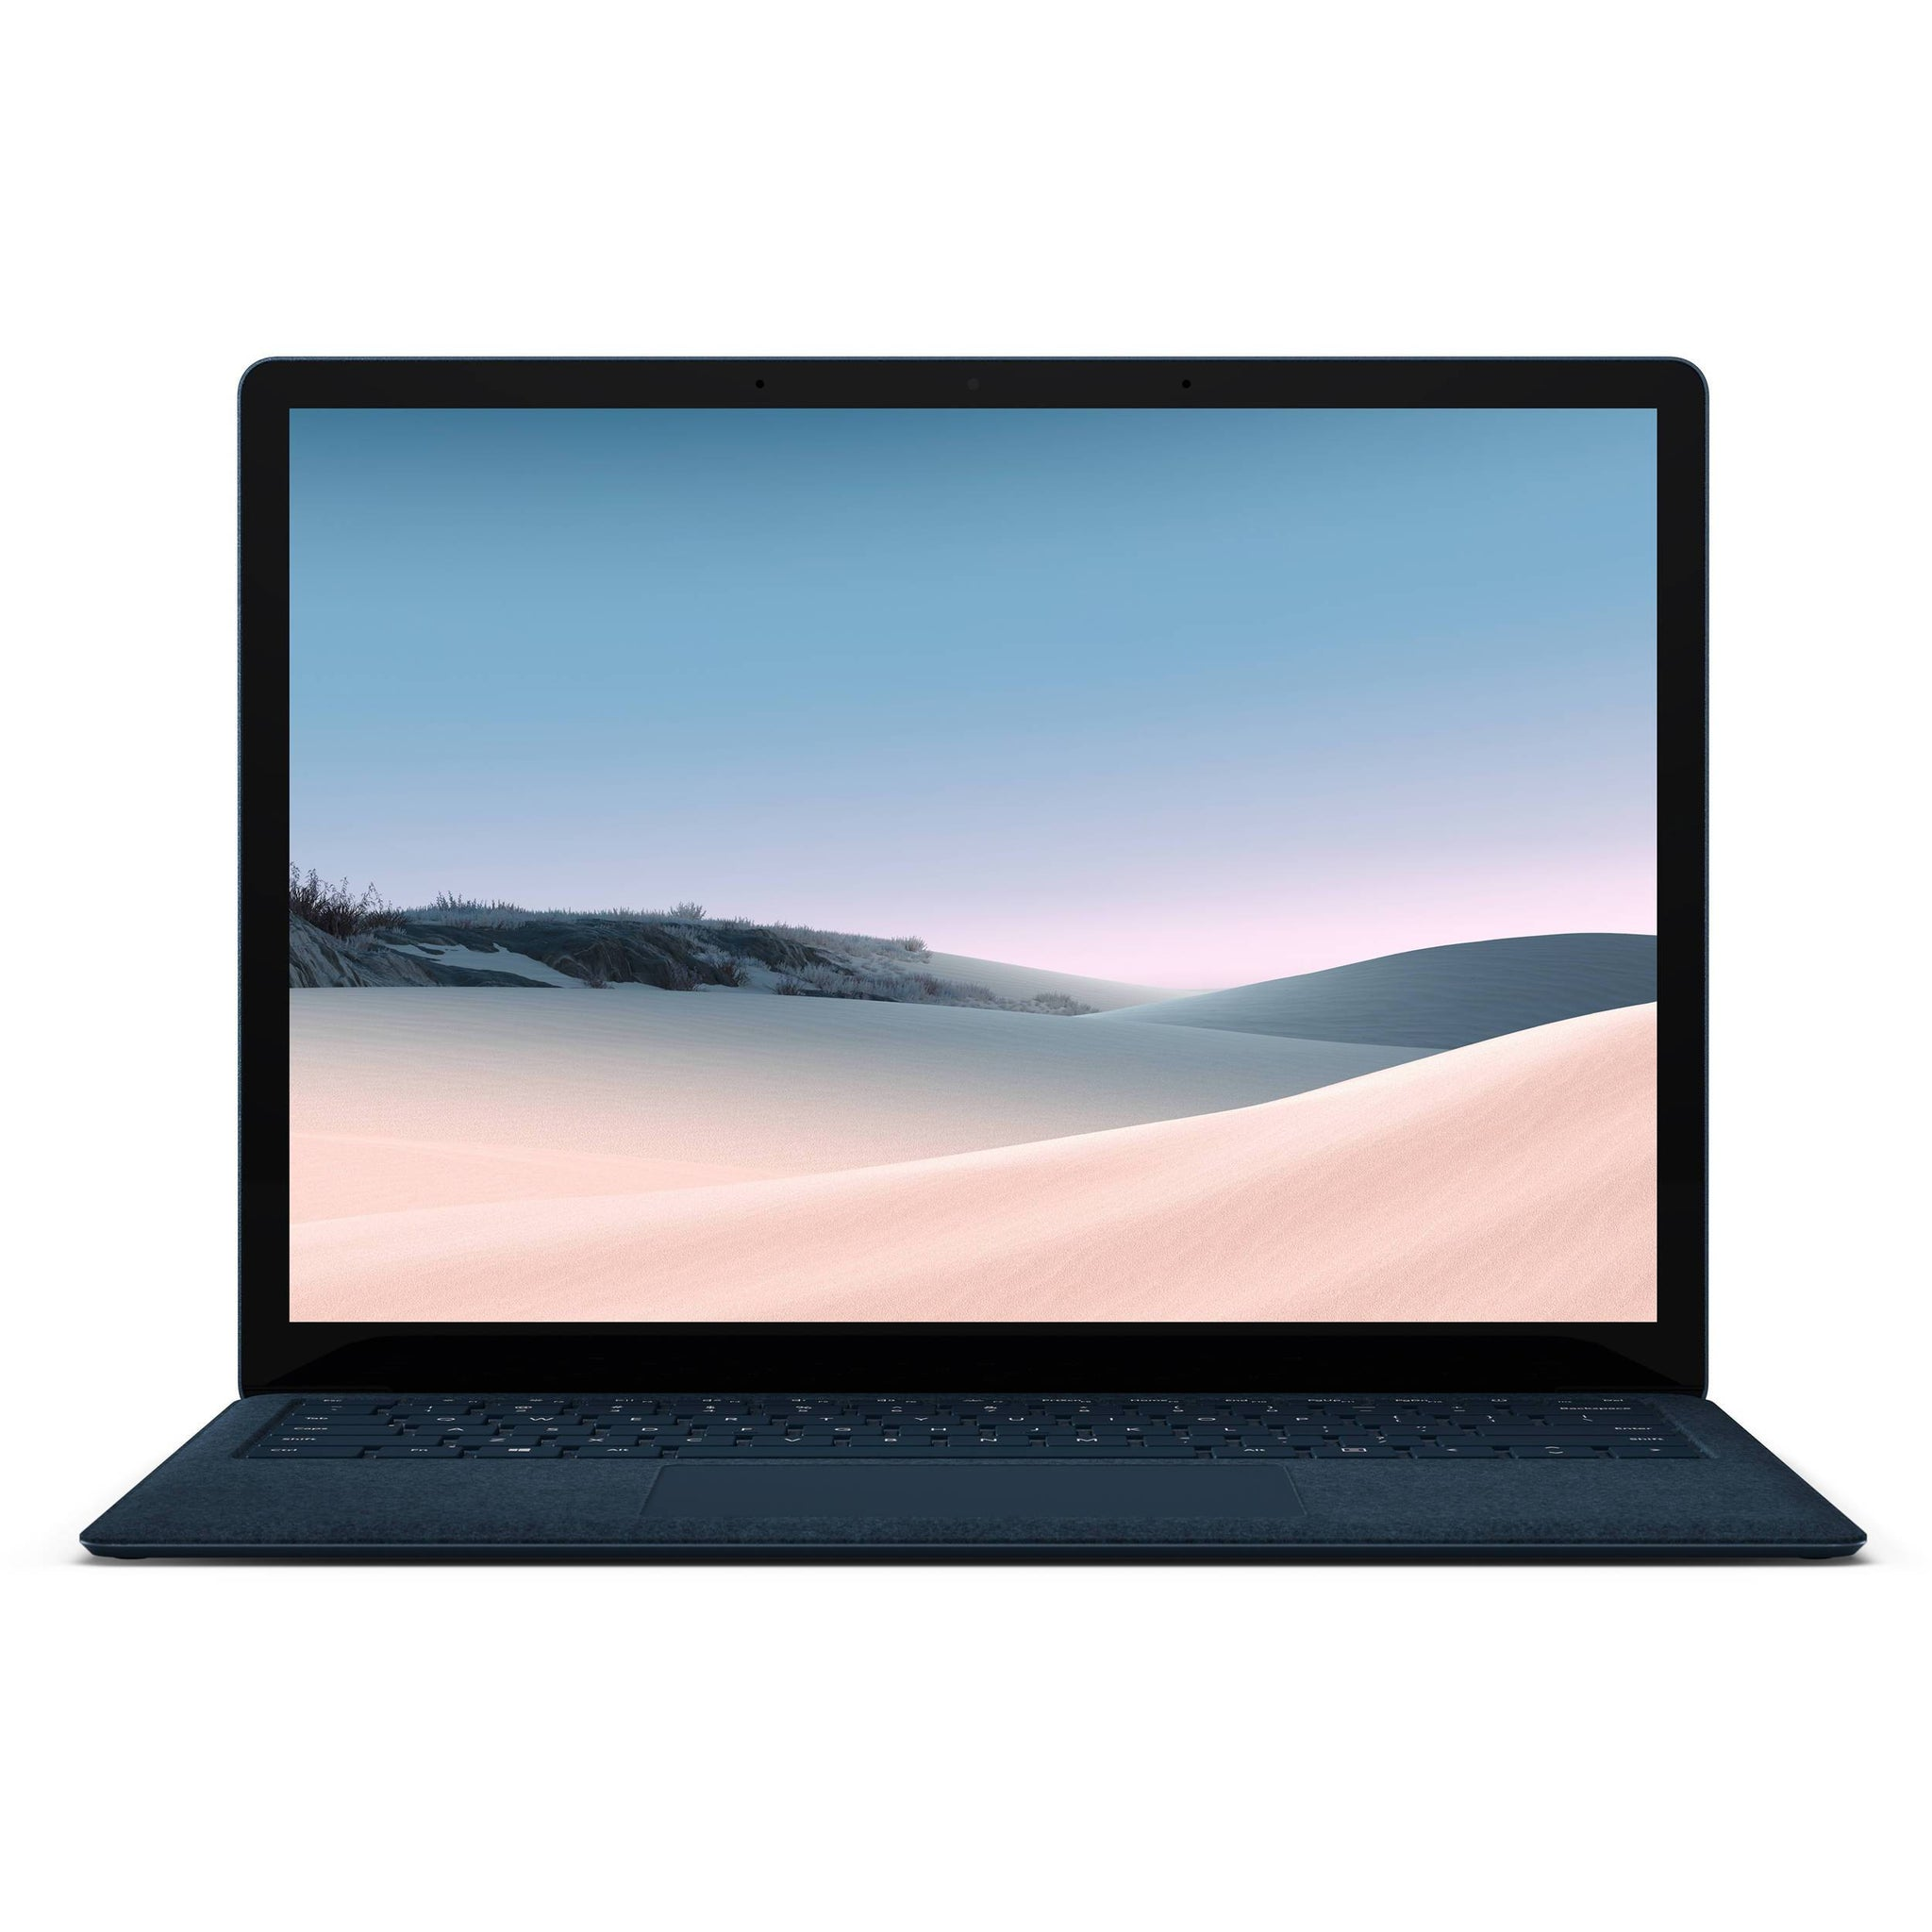 "Microsoft 13.5"" Multi-Touch Surface Laptop 3 (Cobalt Blue) 